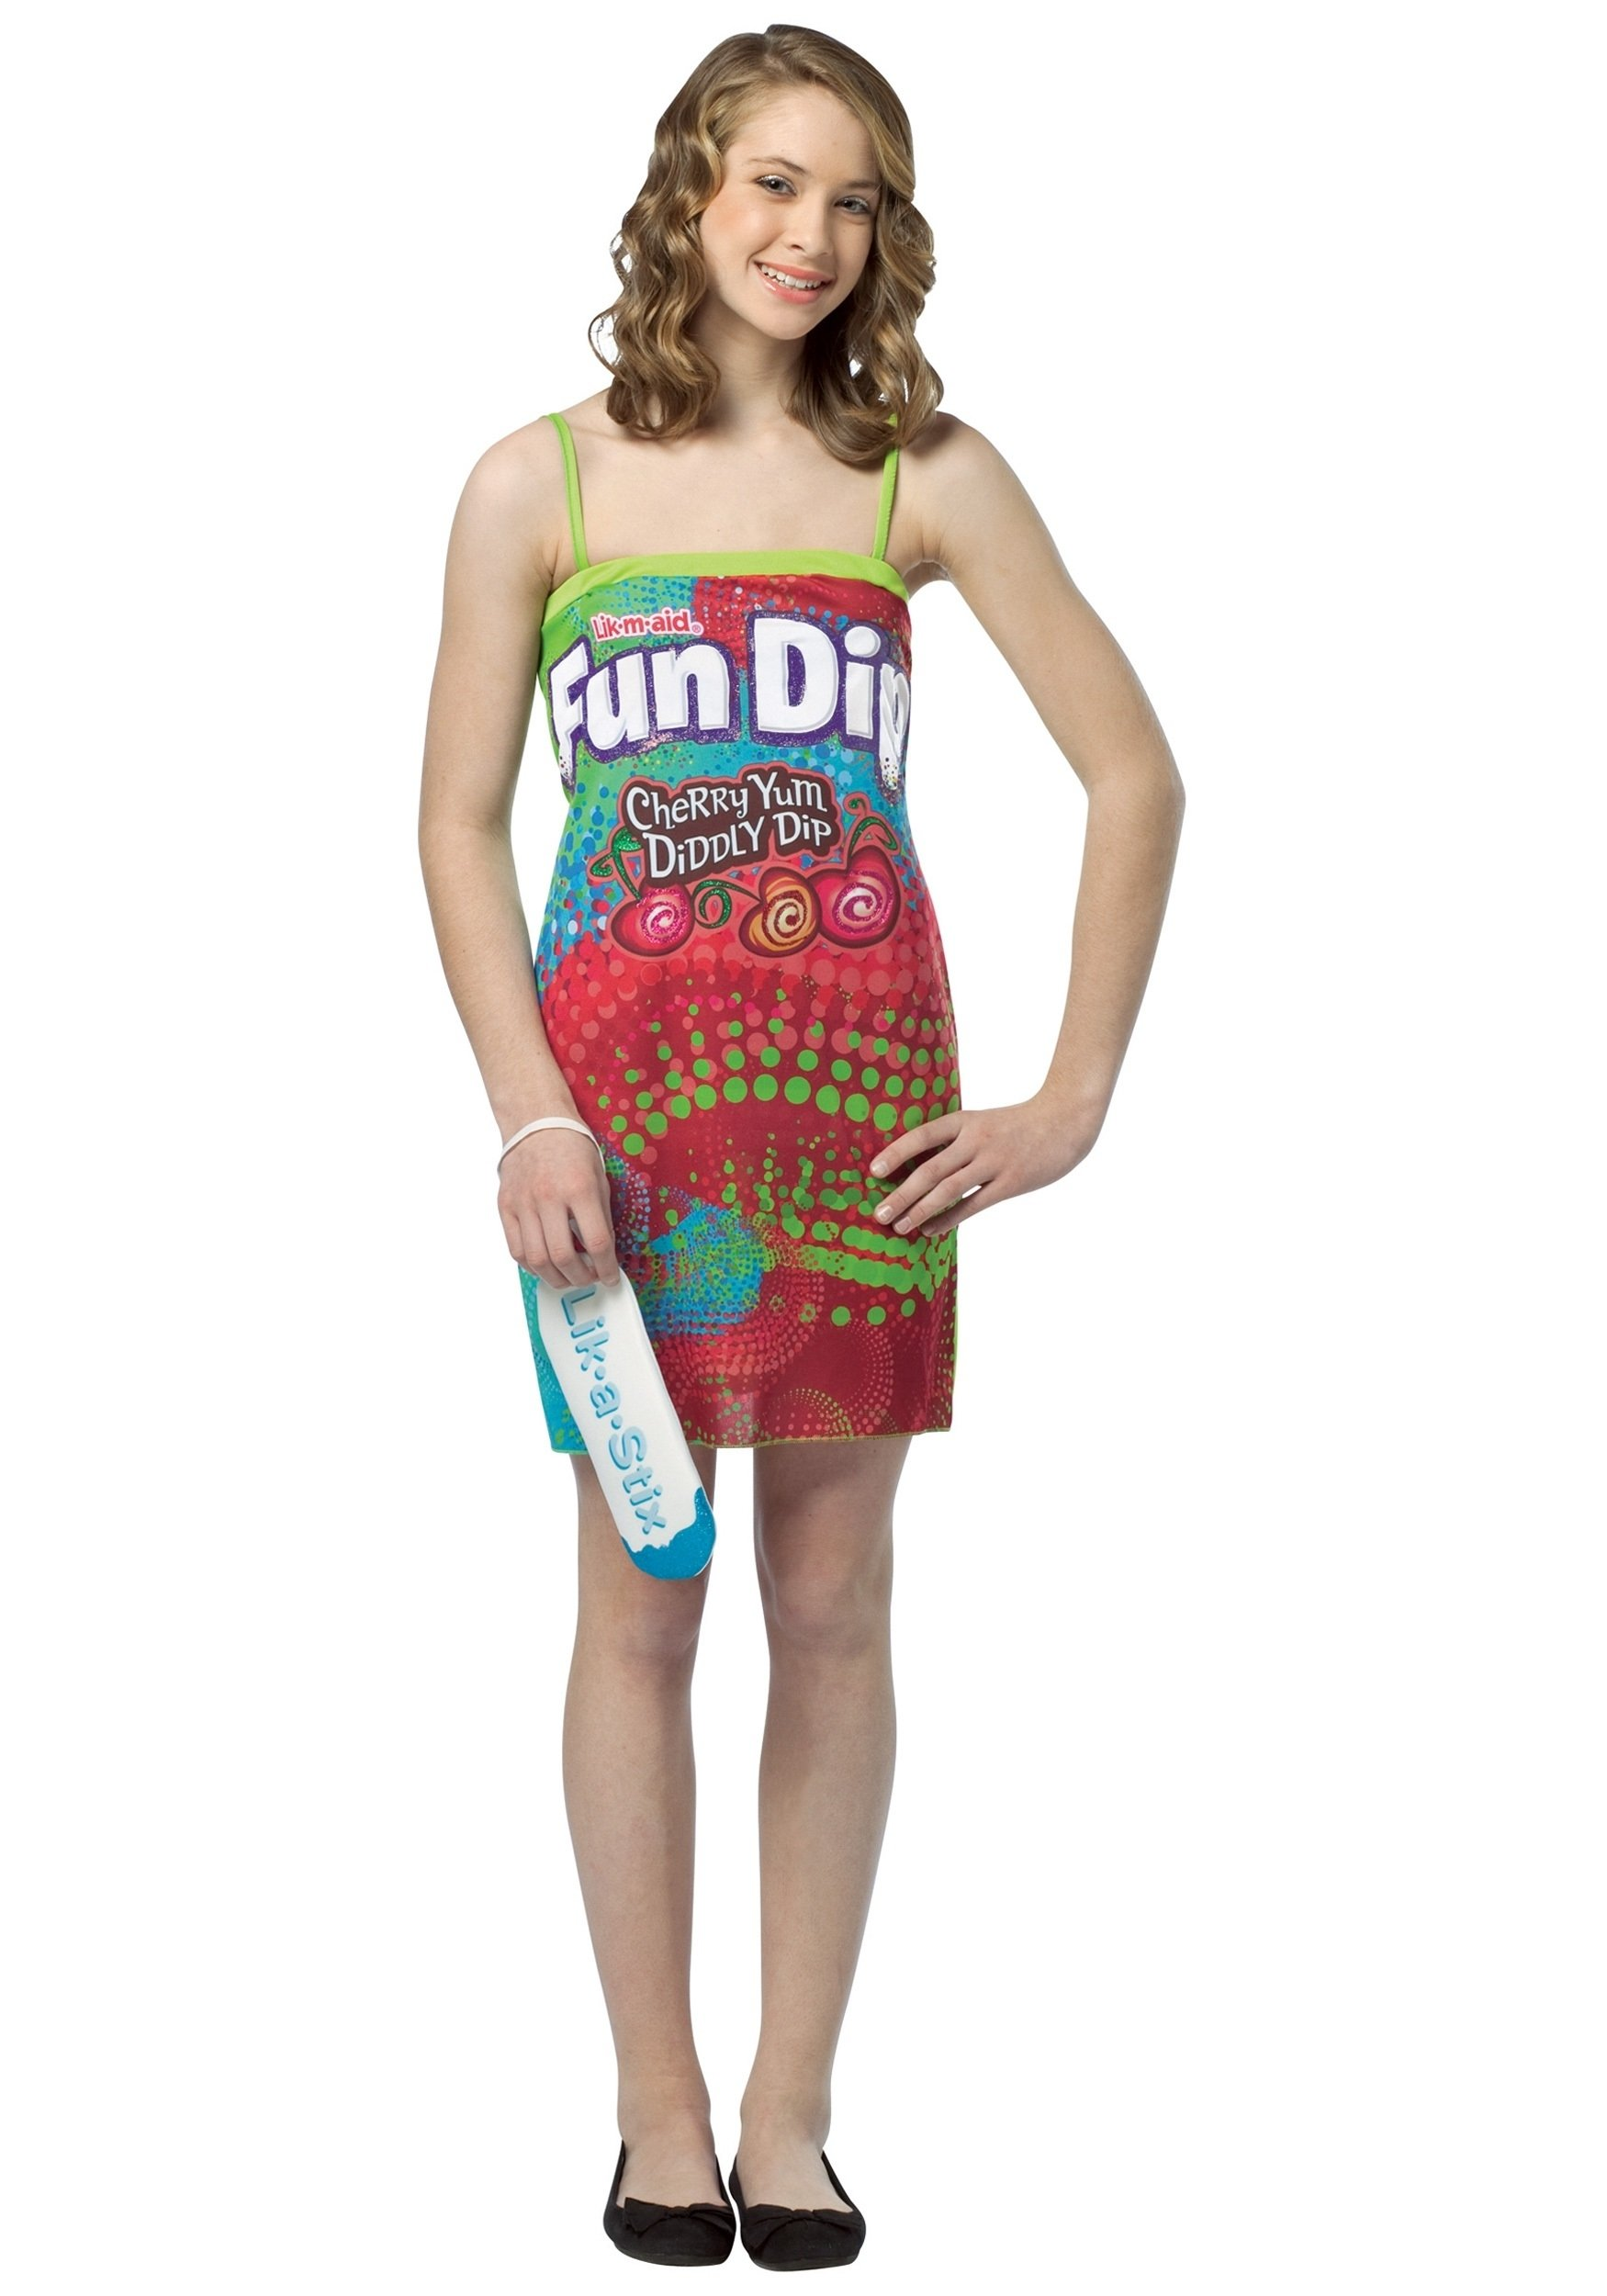 10 Most Recommended Halloween Costumes Teenage Girls Ideas teen fun dip dress halloween costumes 10 2020